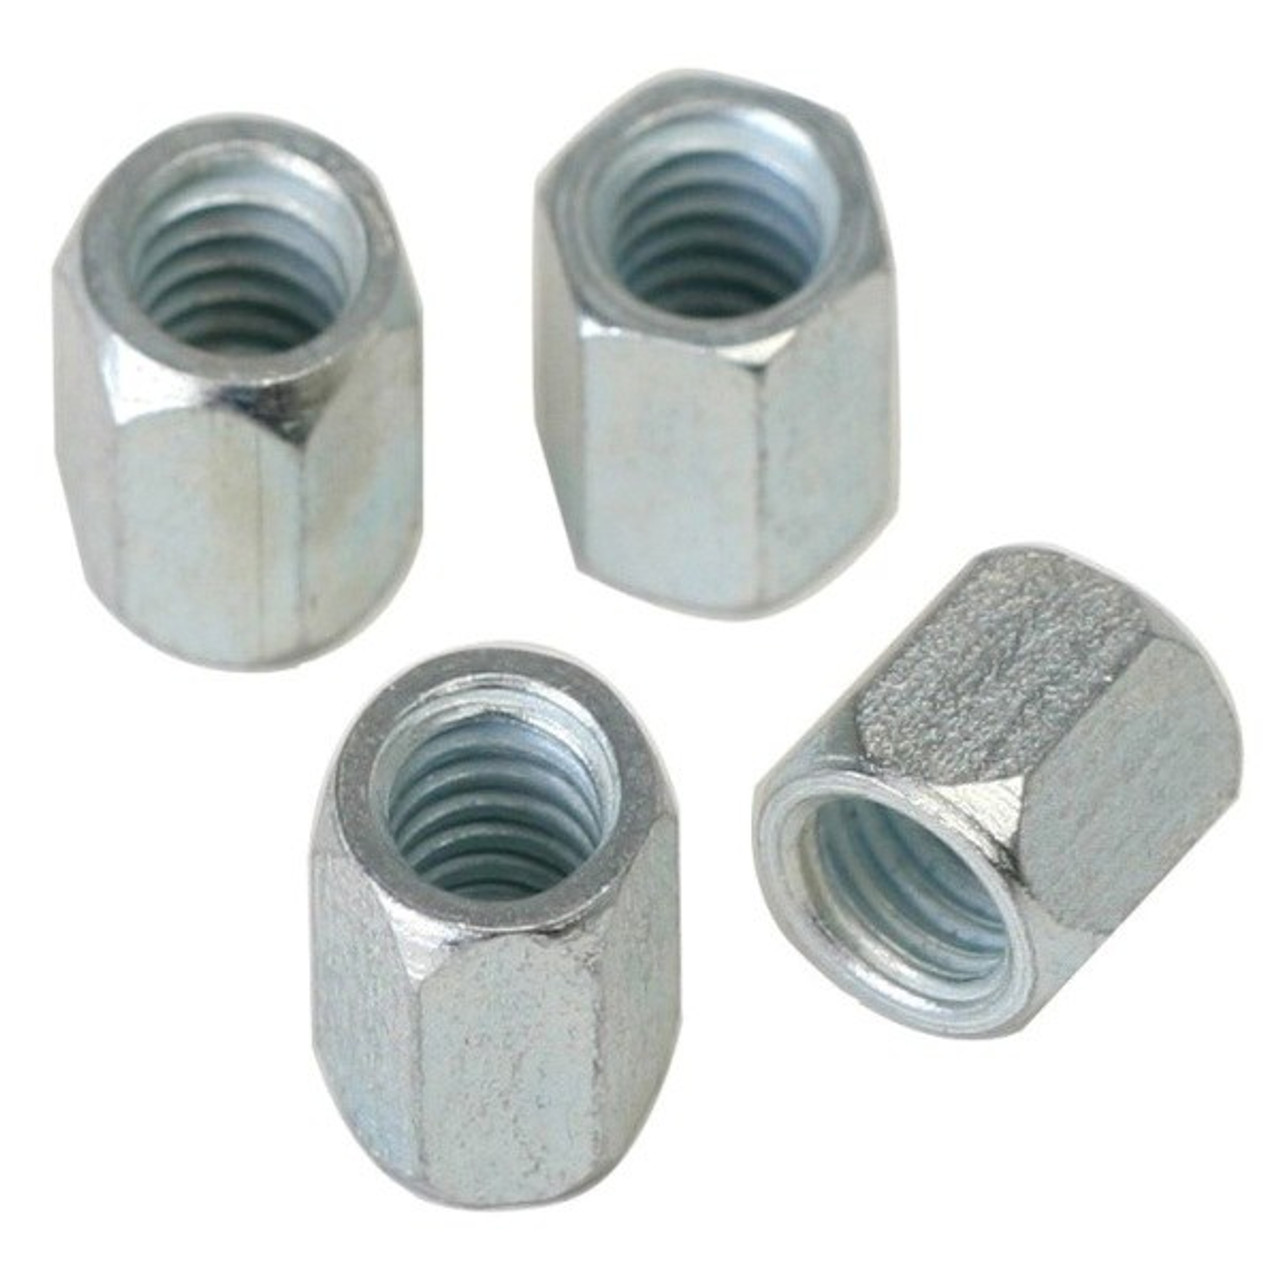 Intake Manifold Nuts 8mm X 1 25 Threaded Studs Wrench Size 11mm